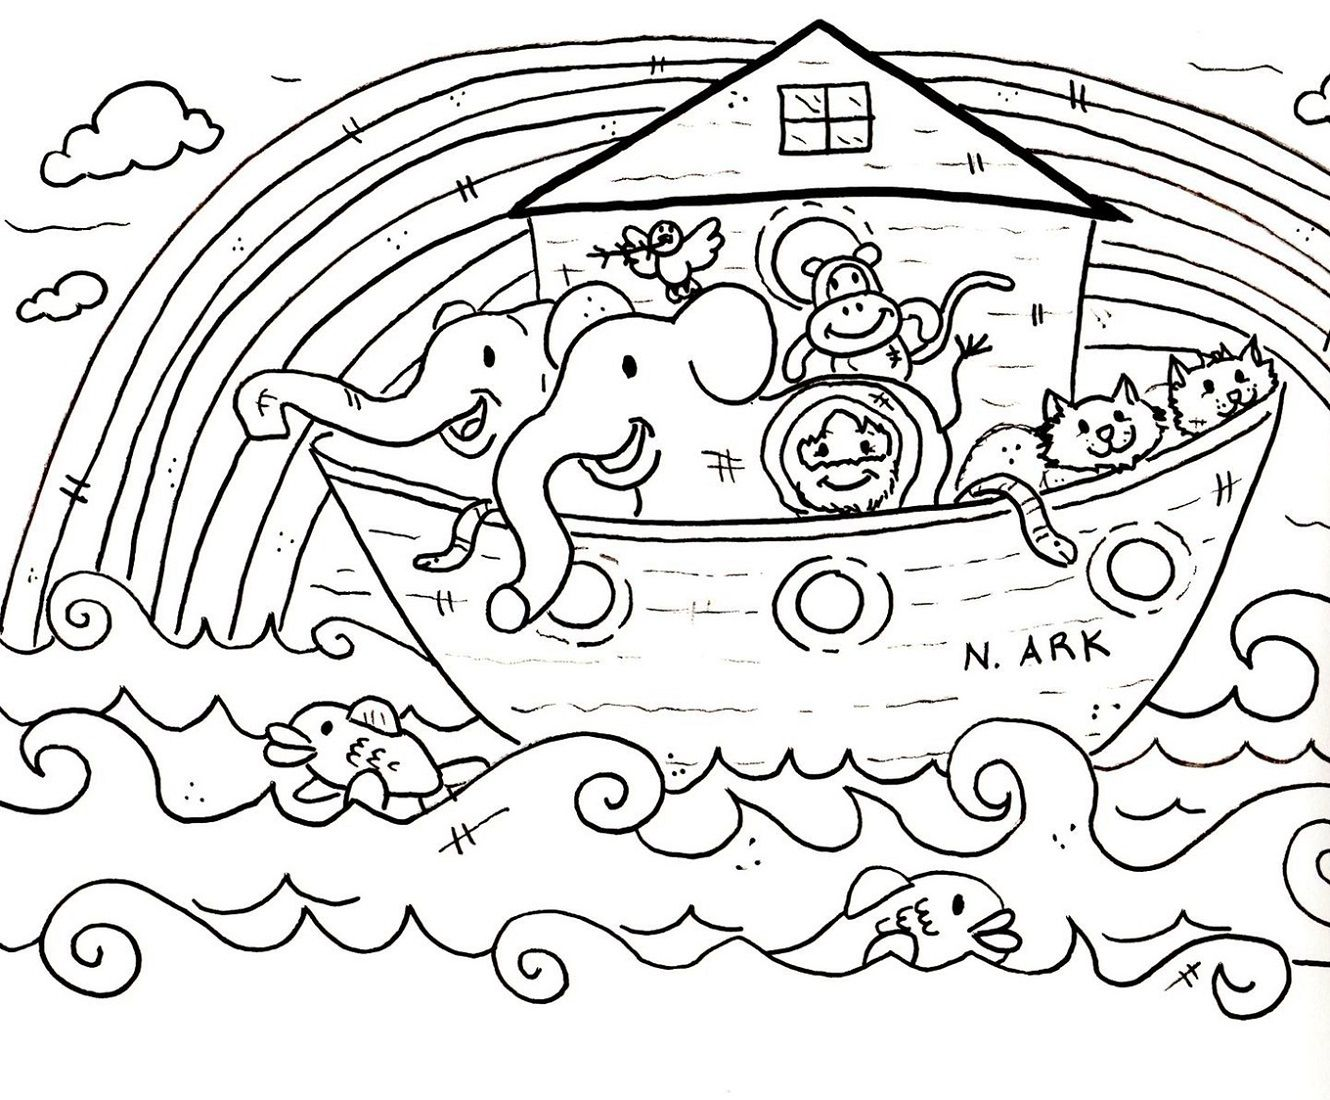 Printable Coloring Pictures For Children Sunday School Coloring Pages Bible Coloring Pages Bible Coloring